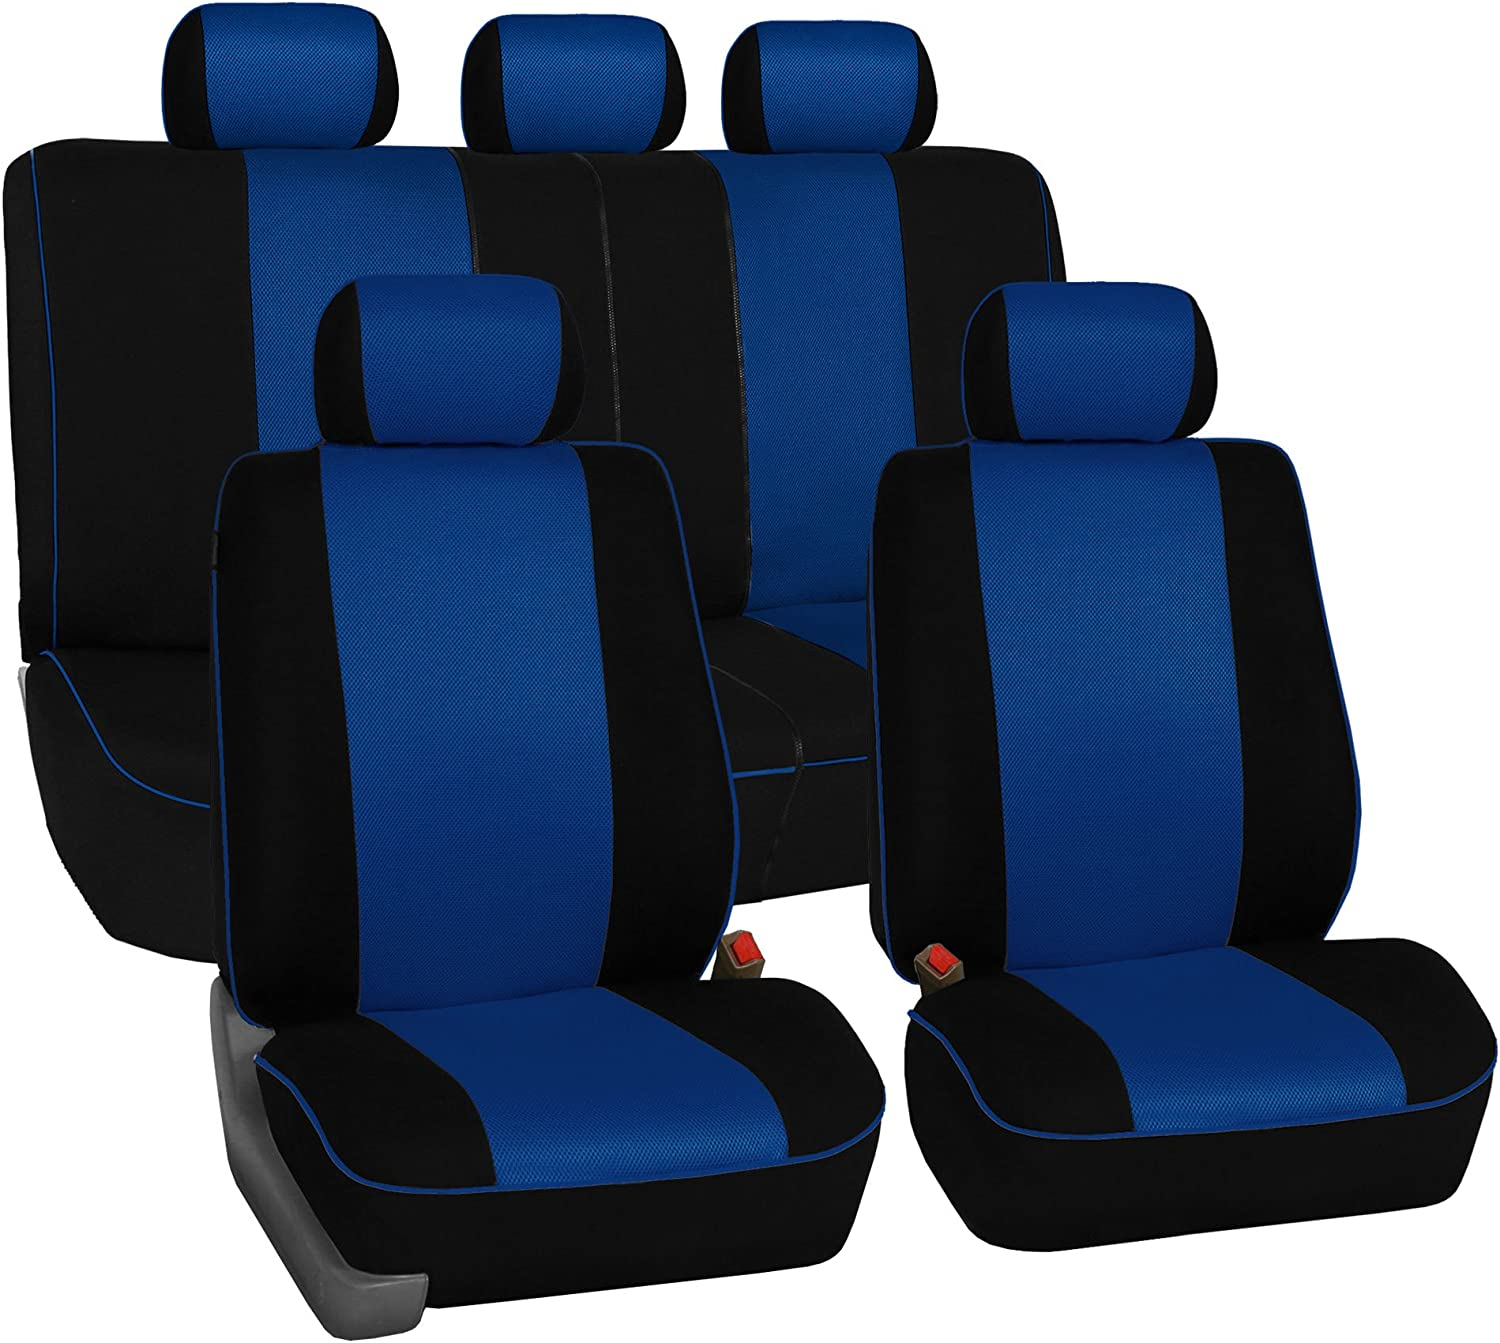 FH Group FH-FB063115 Full Set Sports Fabric Car Seat Covers Blue/Black, Airbag Compatible and Split Bench - Fit Most Car, Truck, SUV, or Van